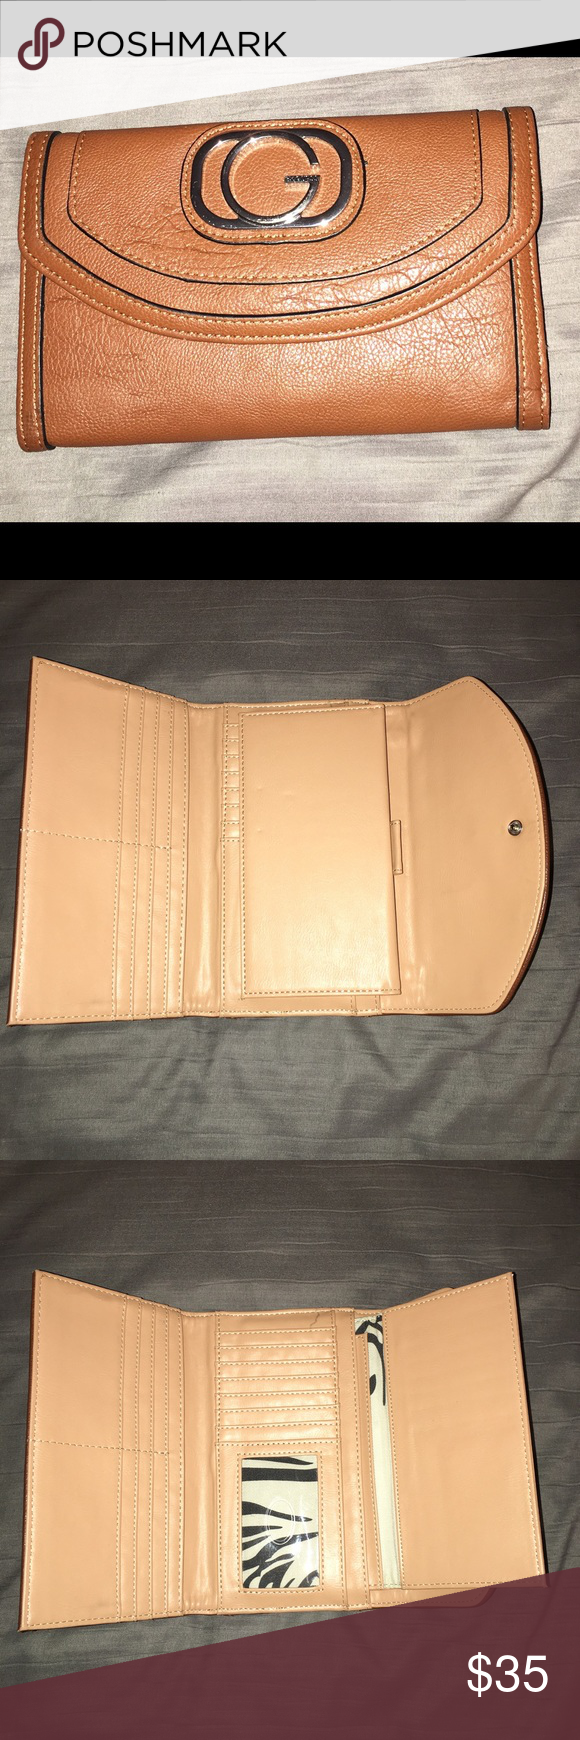 Wallet Used Guess wallet.  Large size.  Shows signs of normal wear. Good condition Guess Bags Wallets